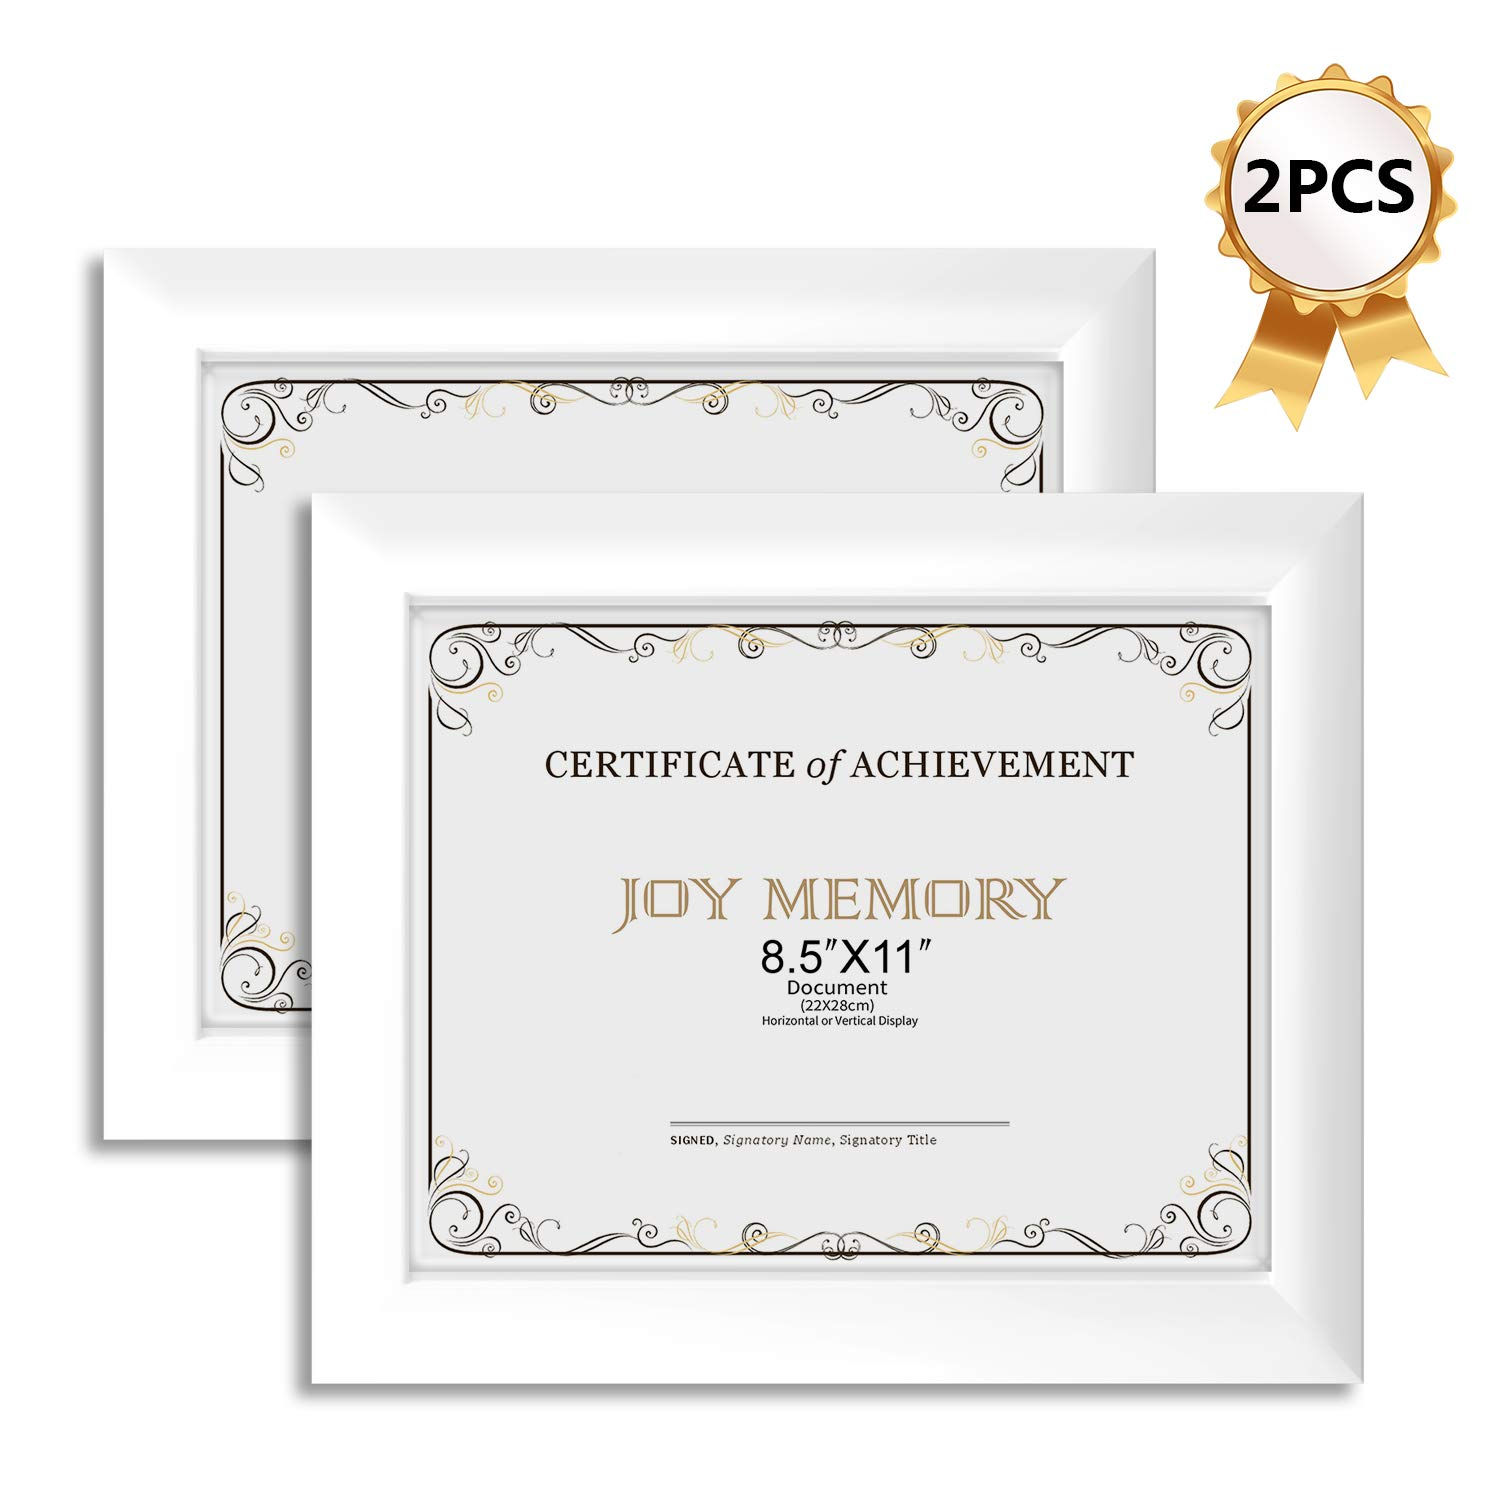 Joy Memory Document Diploma Frames 8 5x11 Set Of 2 Pack Certificate Frames White Glass Fronts Vertical Or Horizontal Display Wall Decor Frame